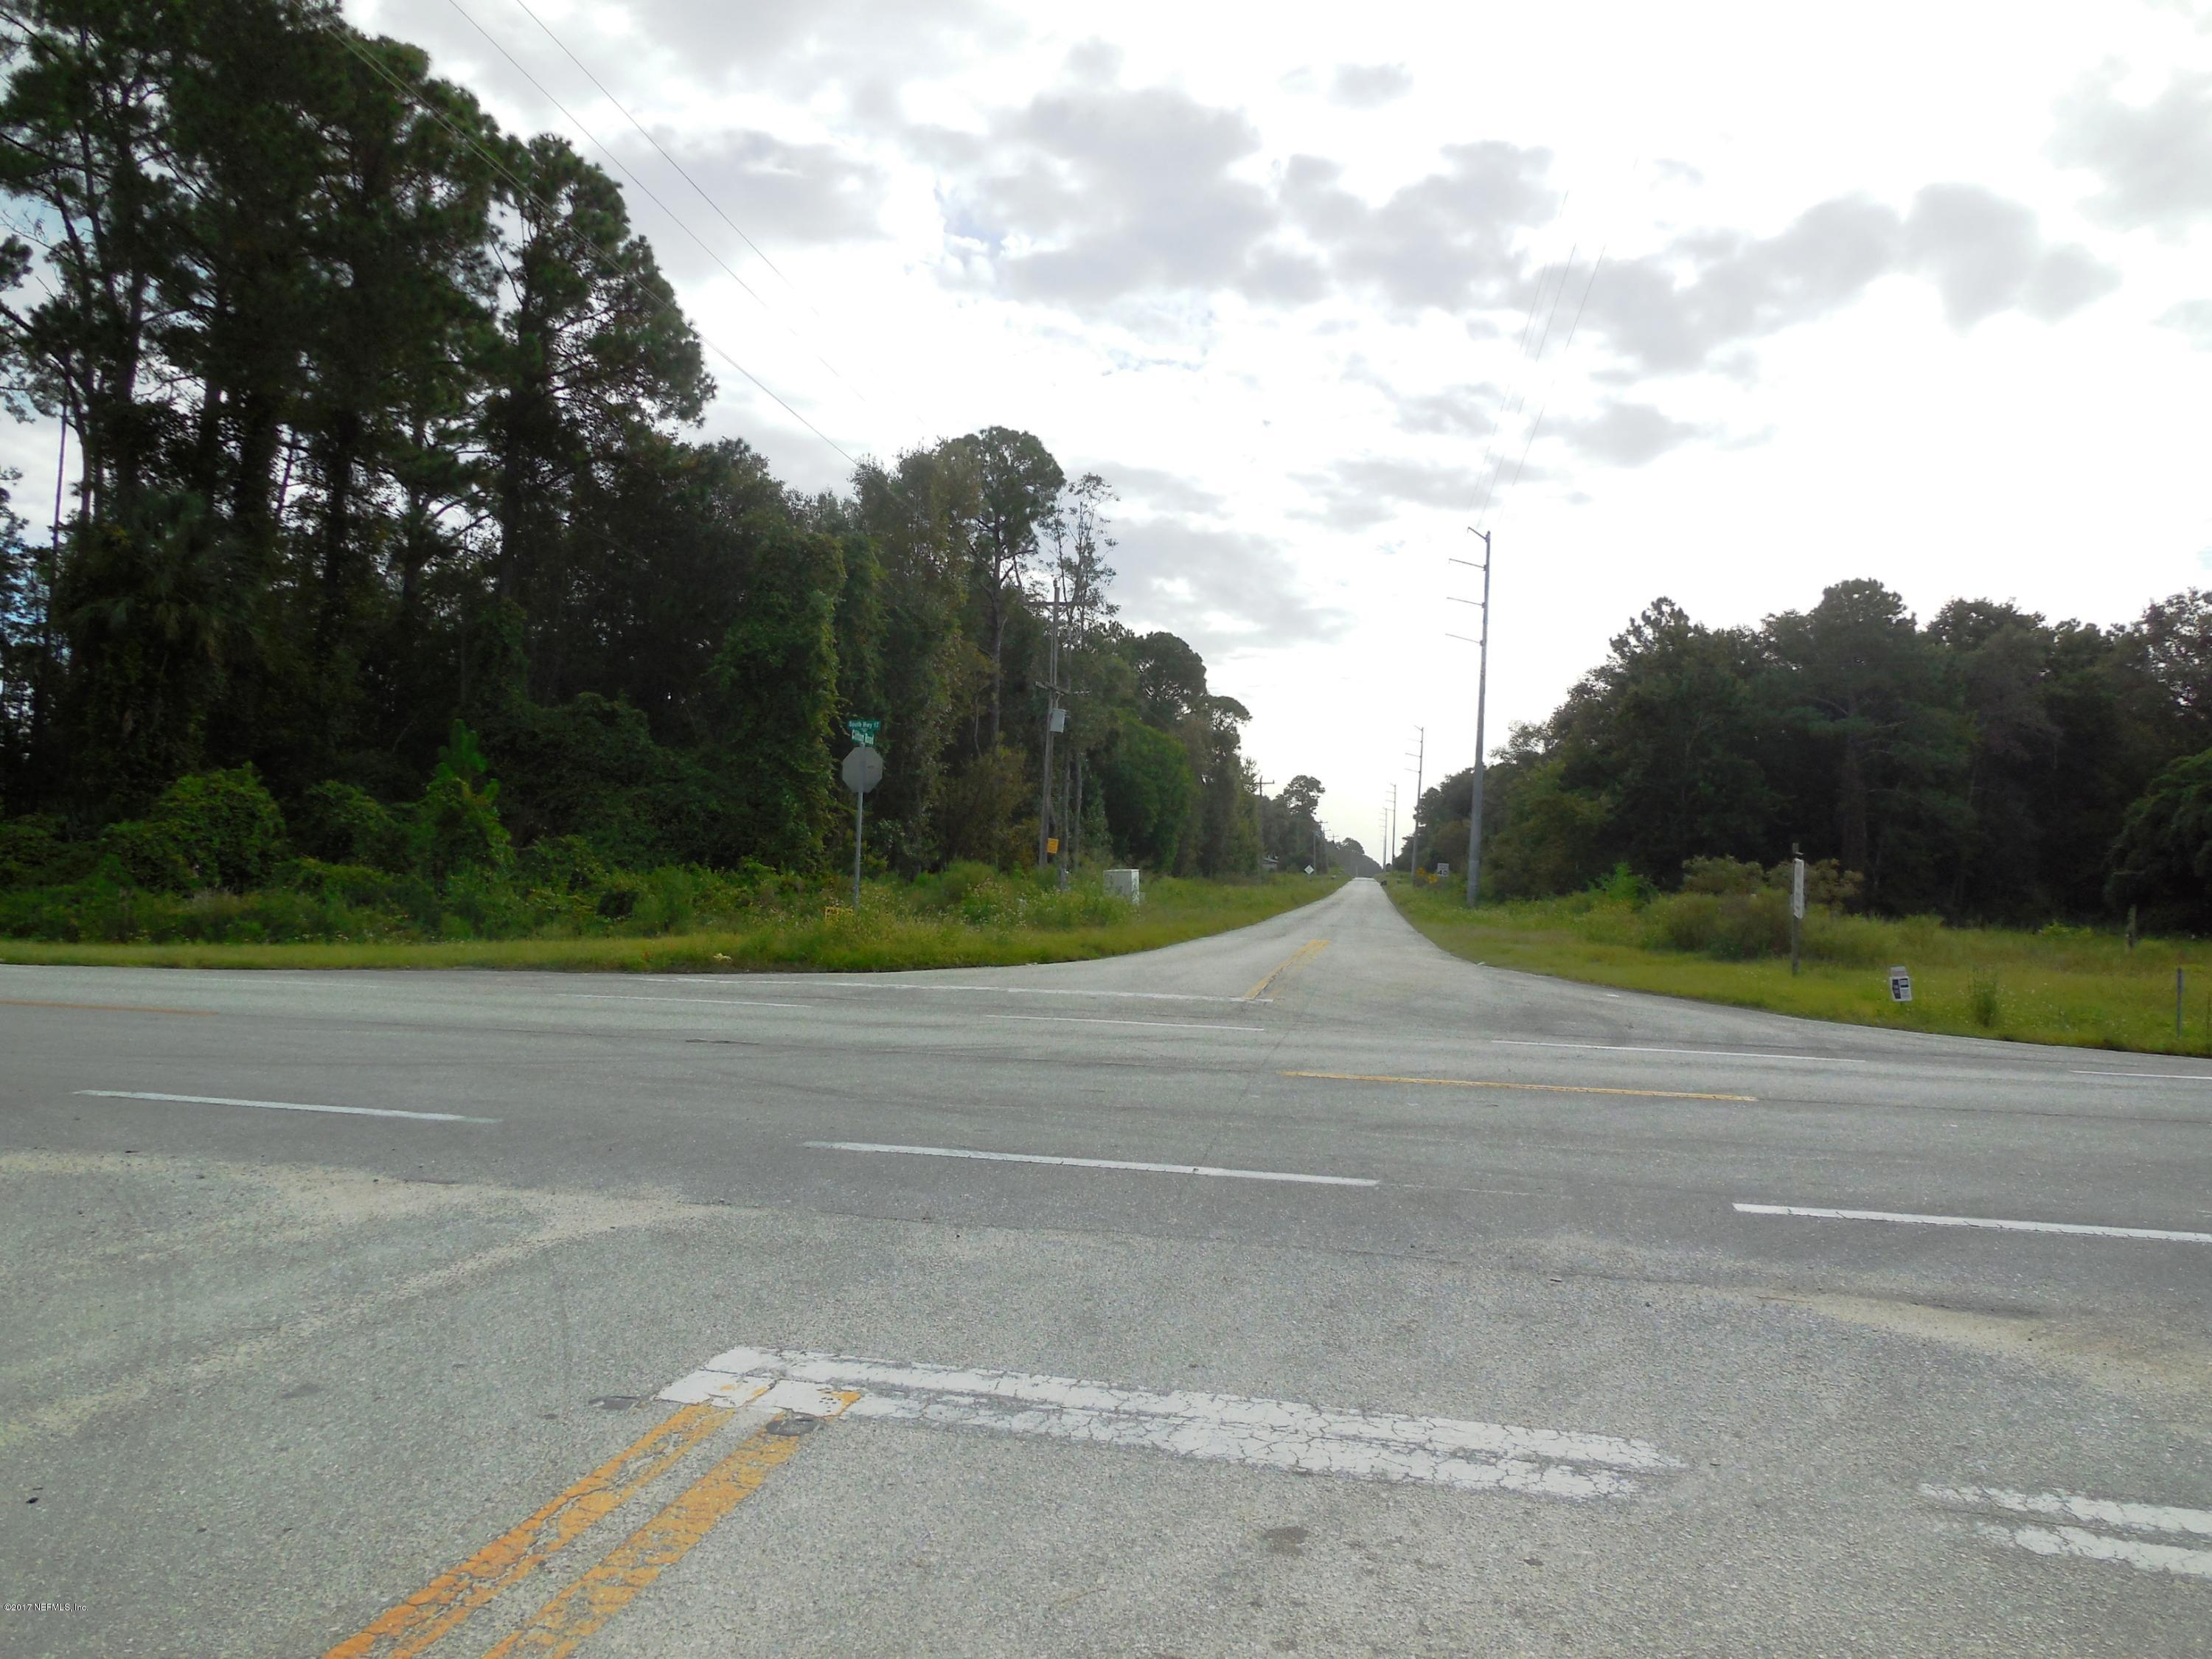 000 HIGHWAY 17, CRESCENT CITY, FLORIDA 32112, ,Vacant land,For sale,HIGHWAY 17,910960